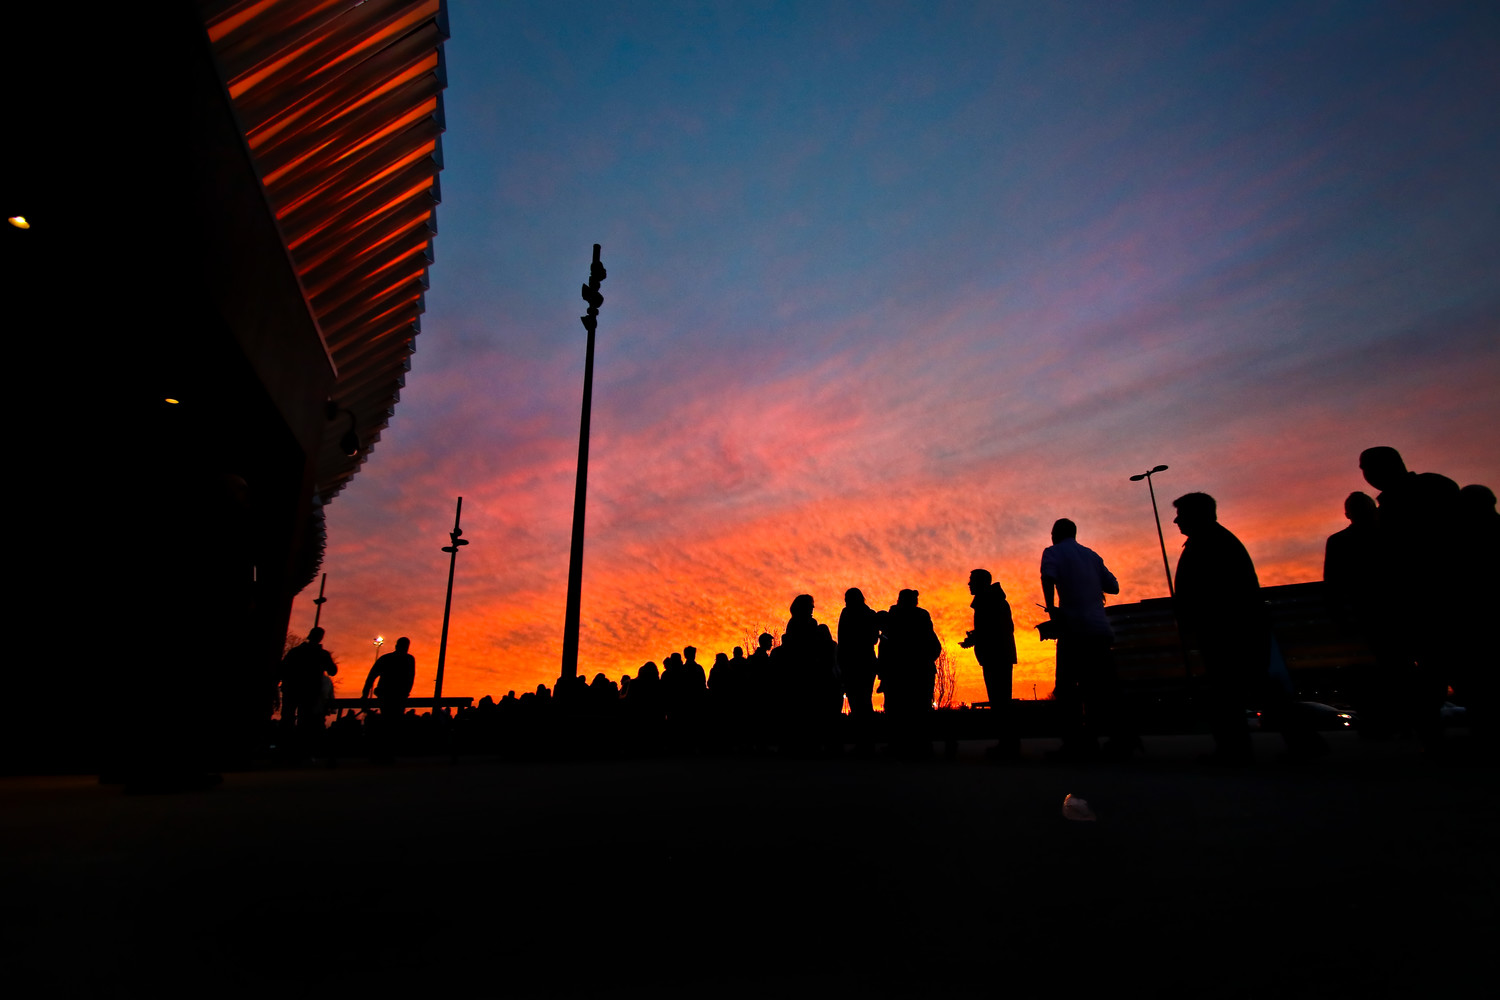 Daly grabbed third place for Art Photo for this silhouetted sunset shot at Nassau Veterans Memorial Coliseum.